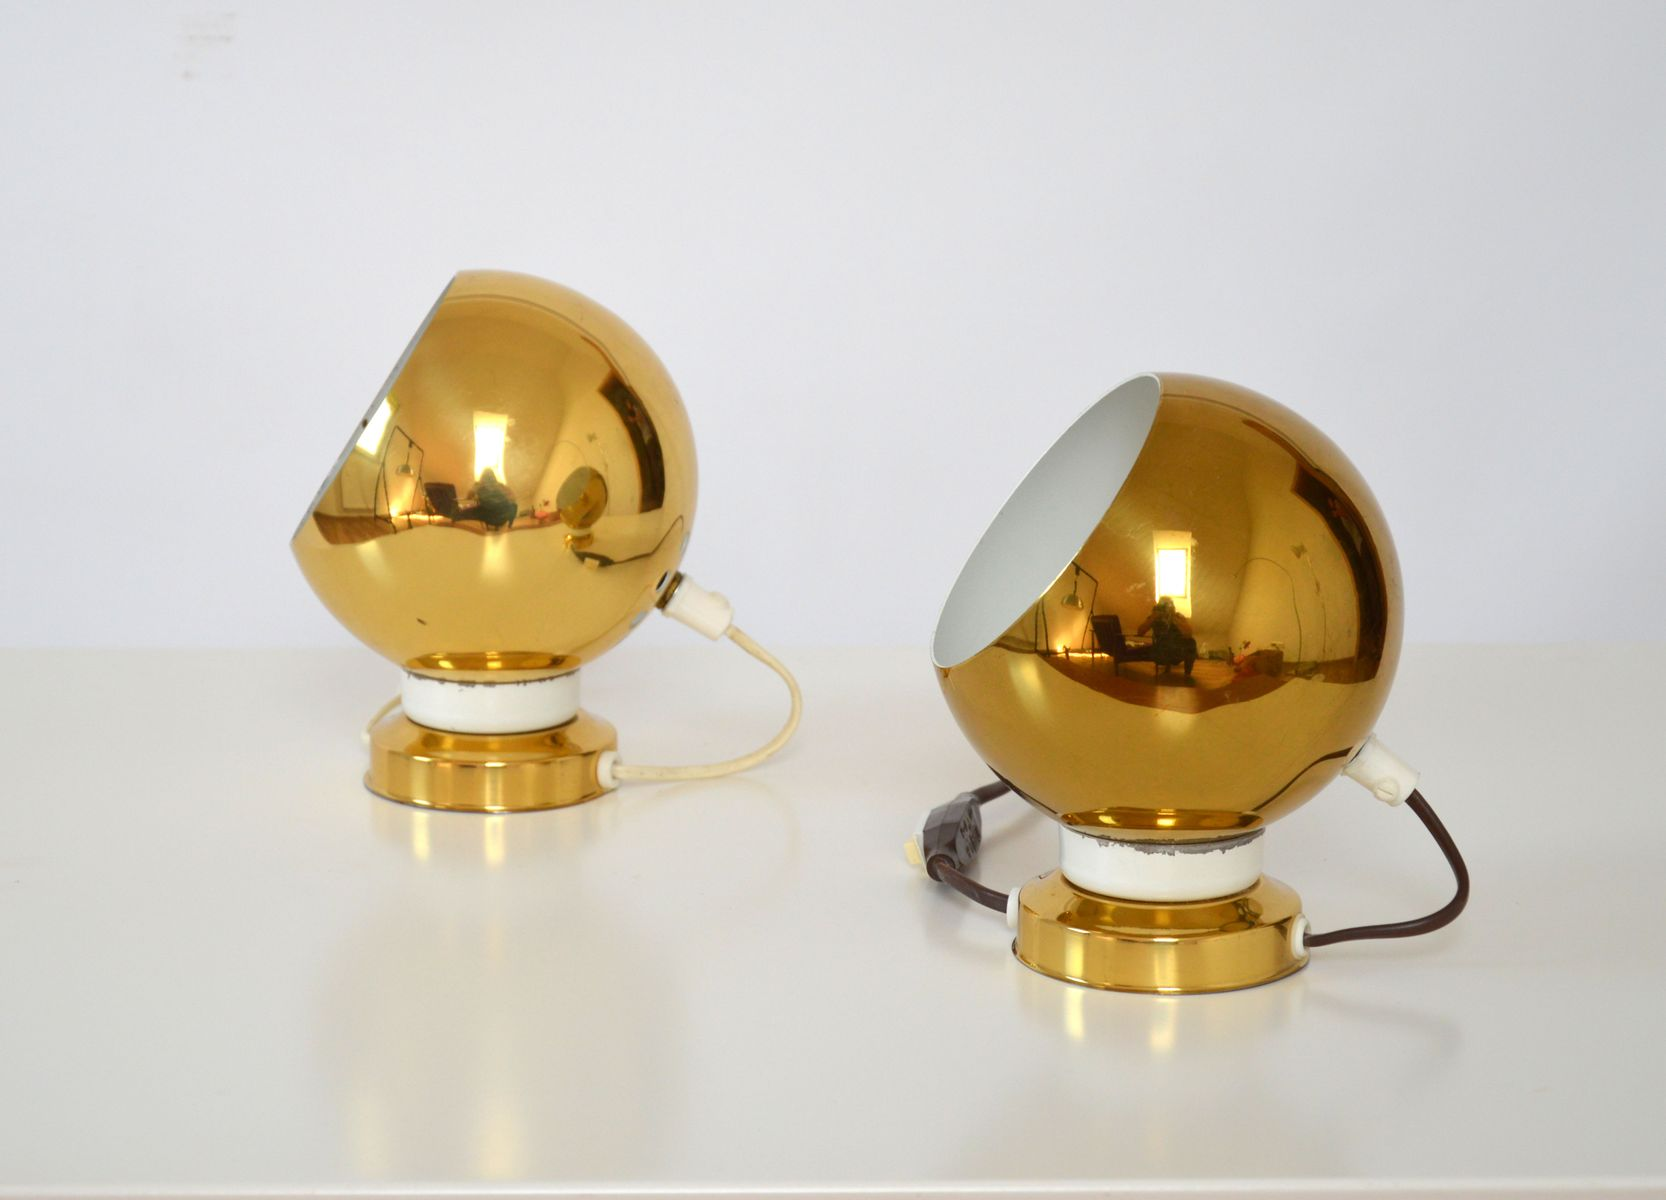 Golden Wall Lamps : Swedish Golden-Colored Wall Lamps, 1970s, Set of 2 for sale at Pamono